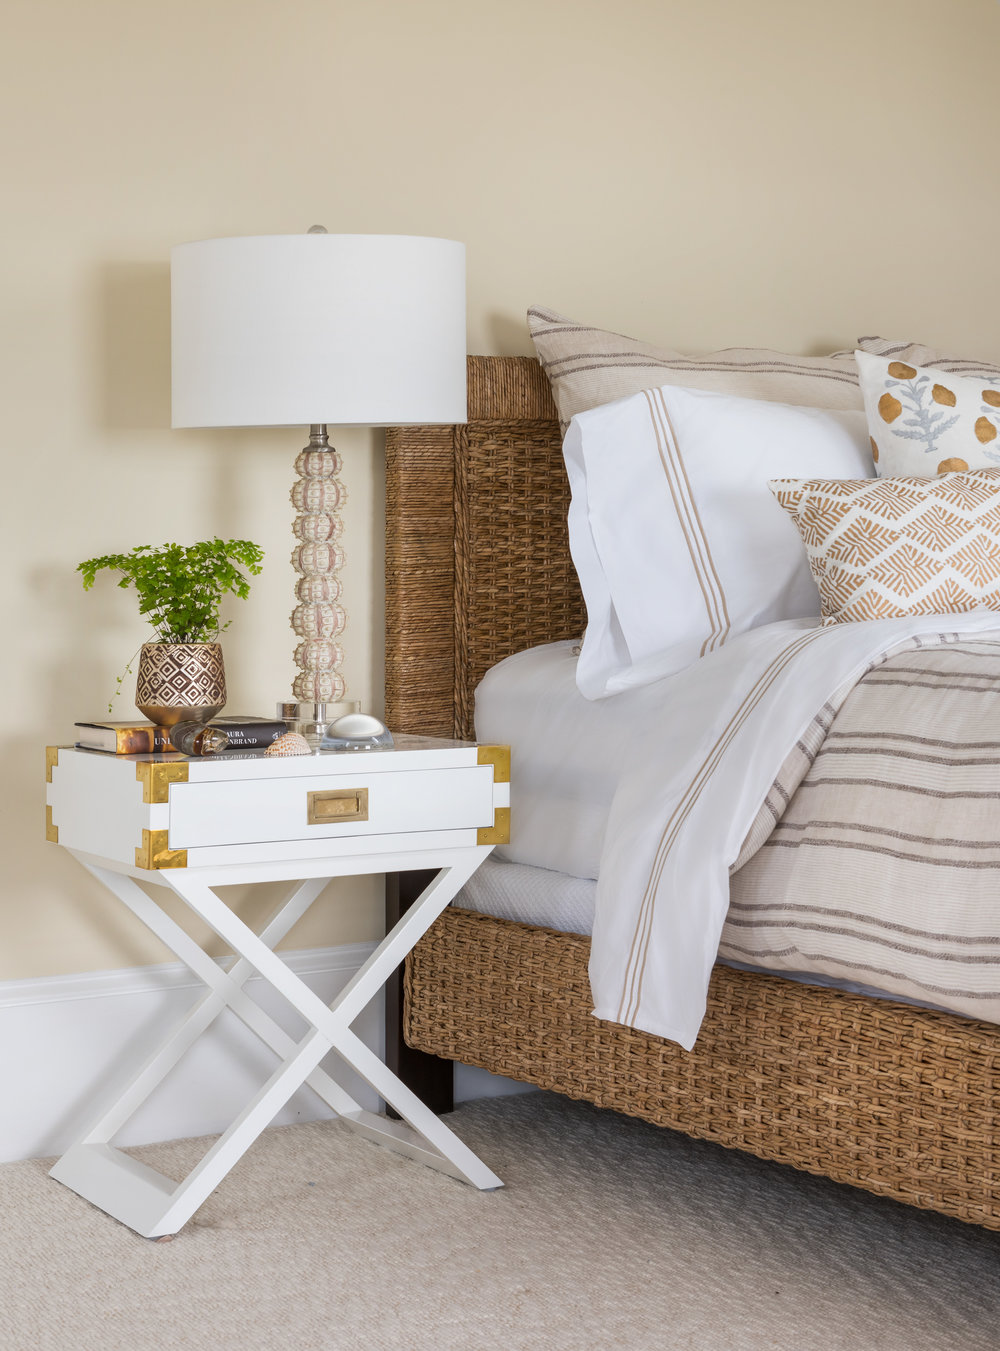 Newport, Rhode Island, interior design, bedroom design, wicker bed, campaign nightstand